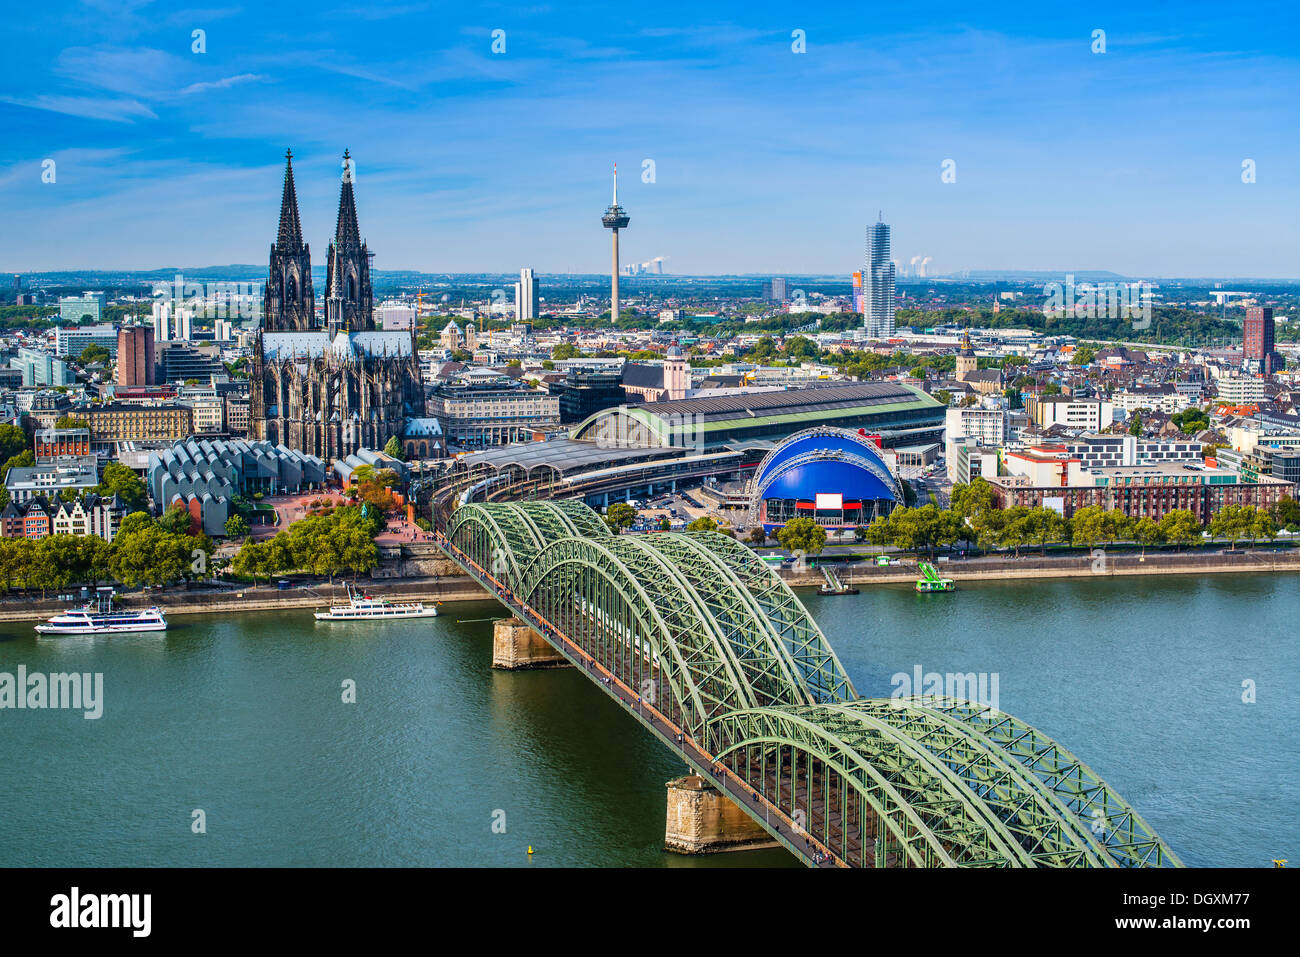 Cologne, Germany aerial view over the Rhine River. Stock Photo